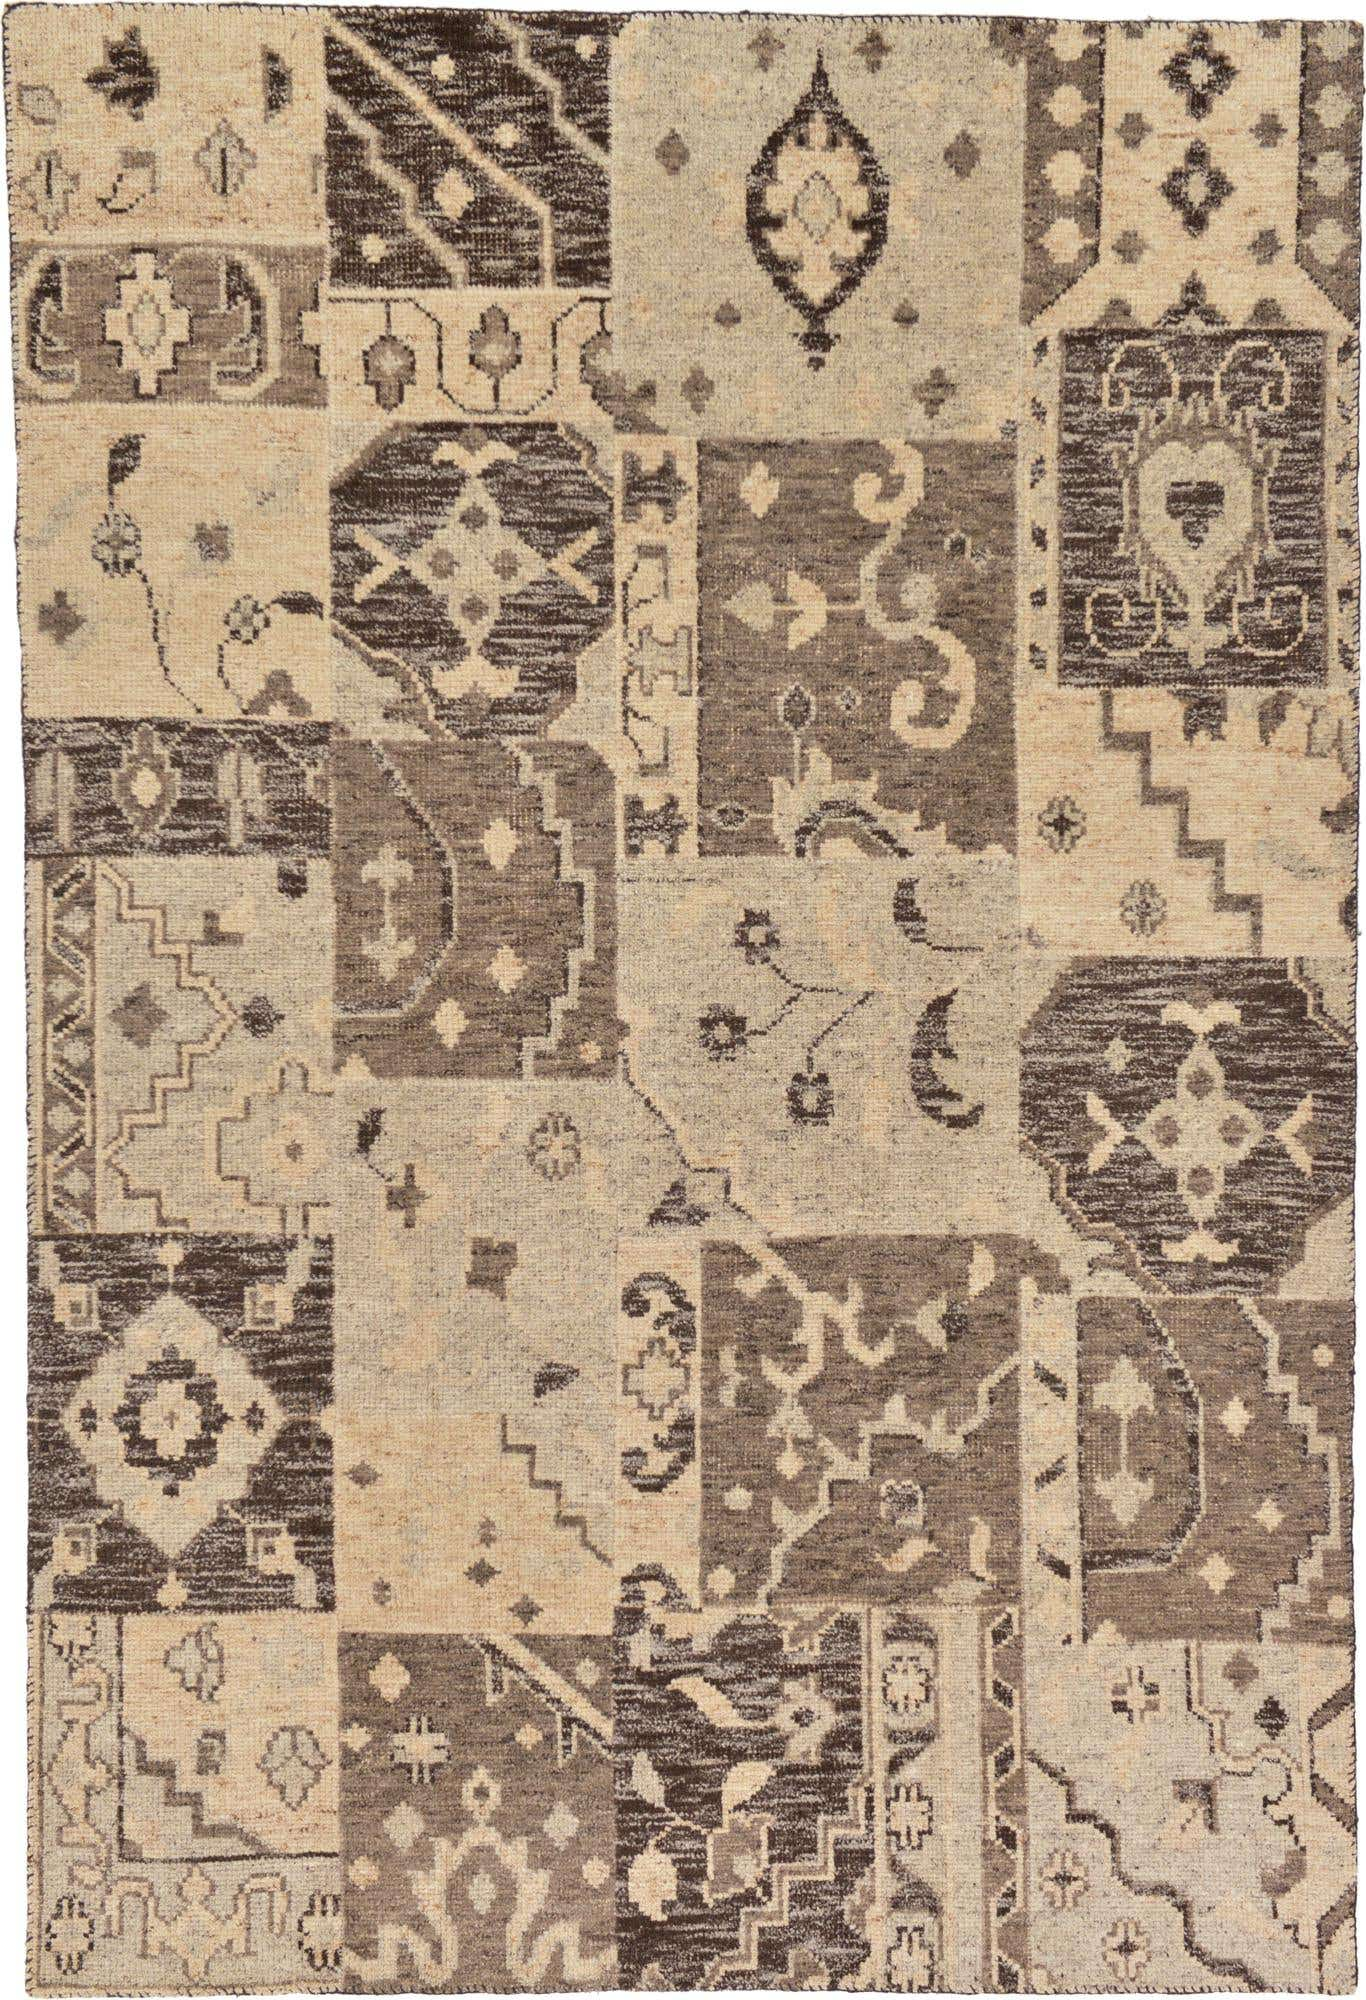 Beige 6 6 X 9 7 Patchwork Rug Handknotted Com